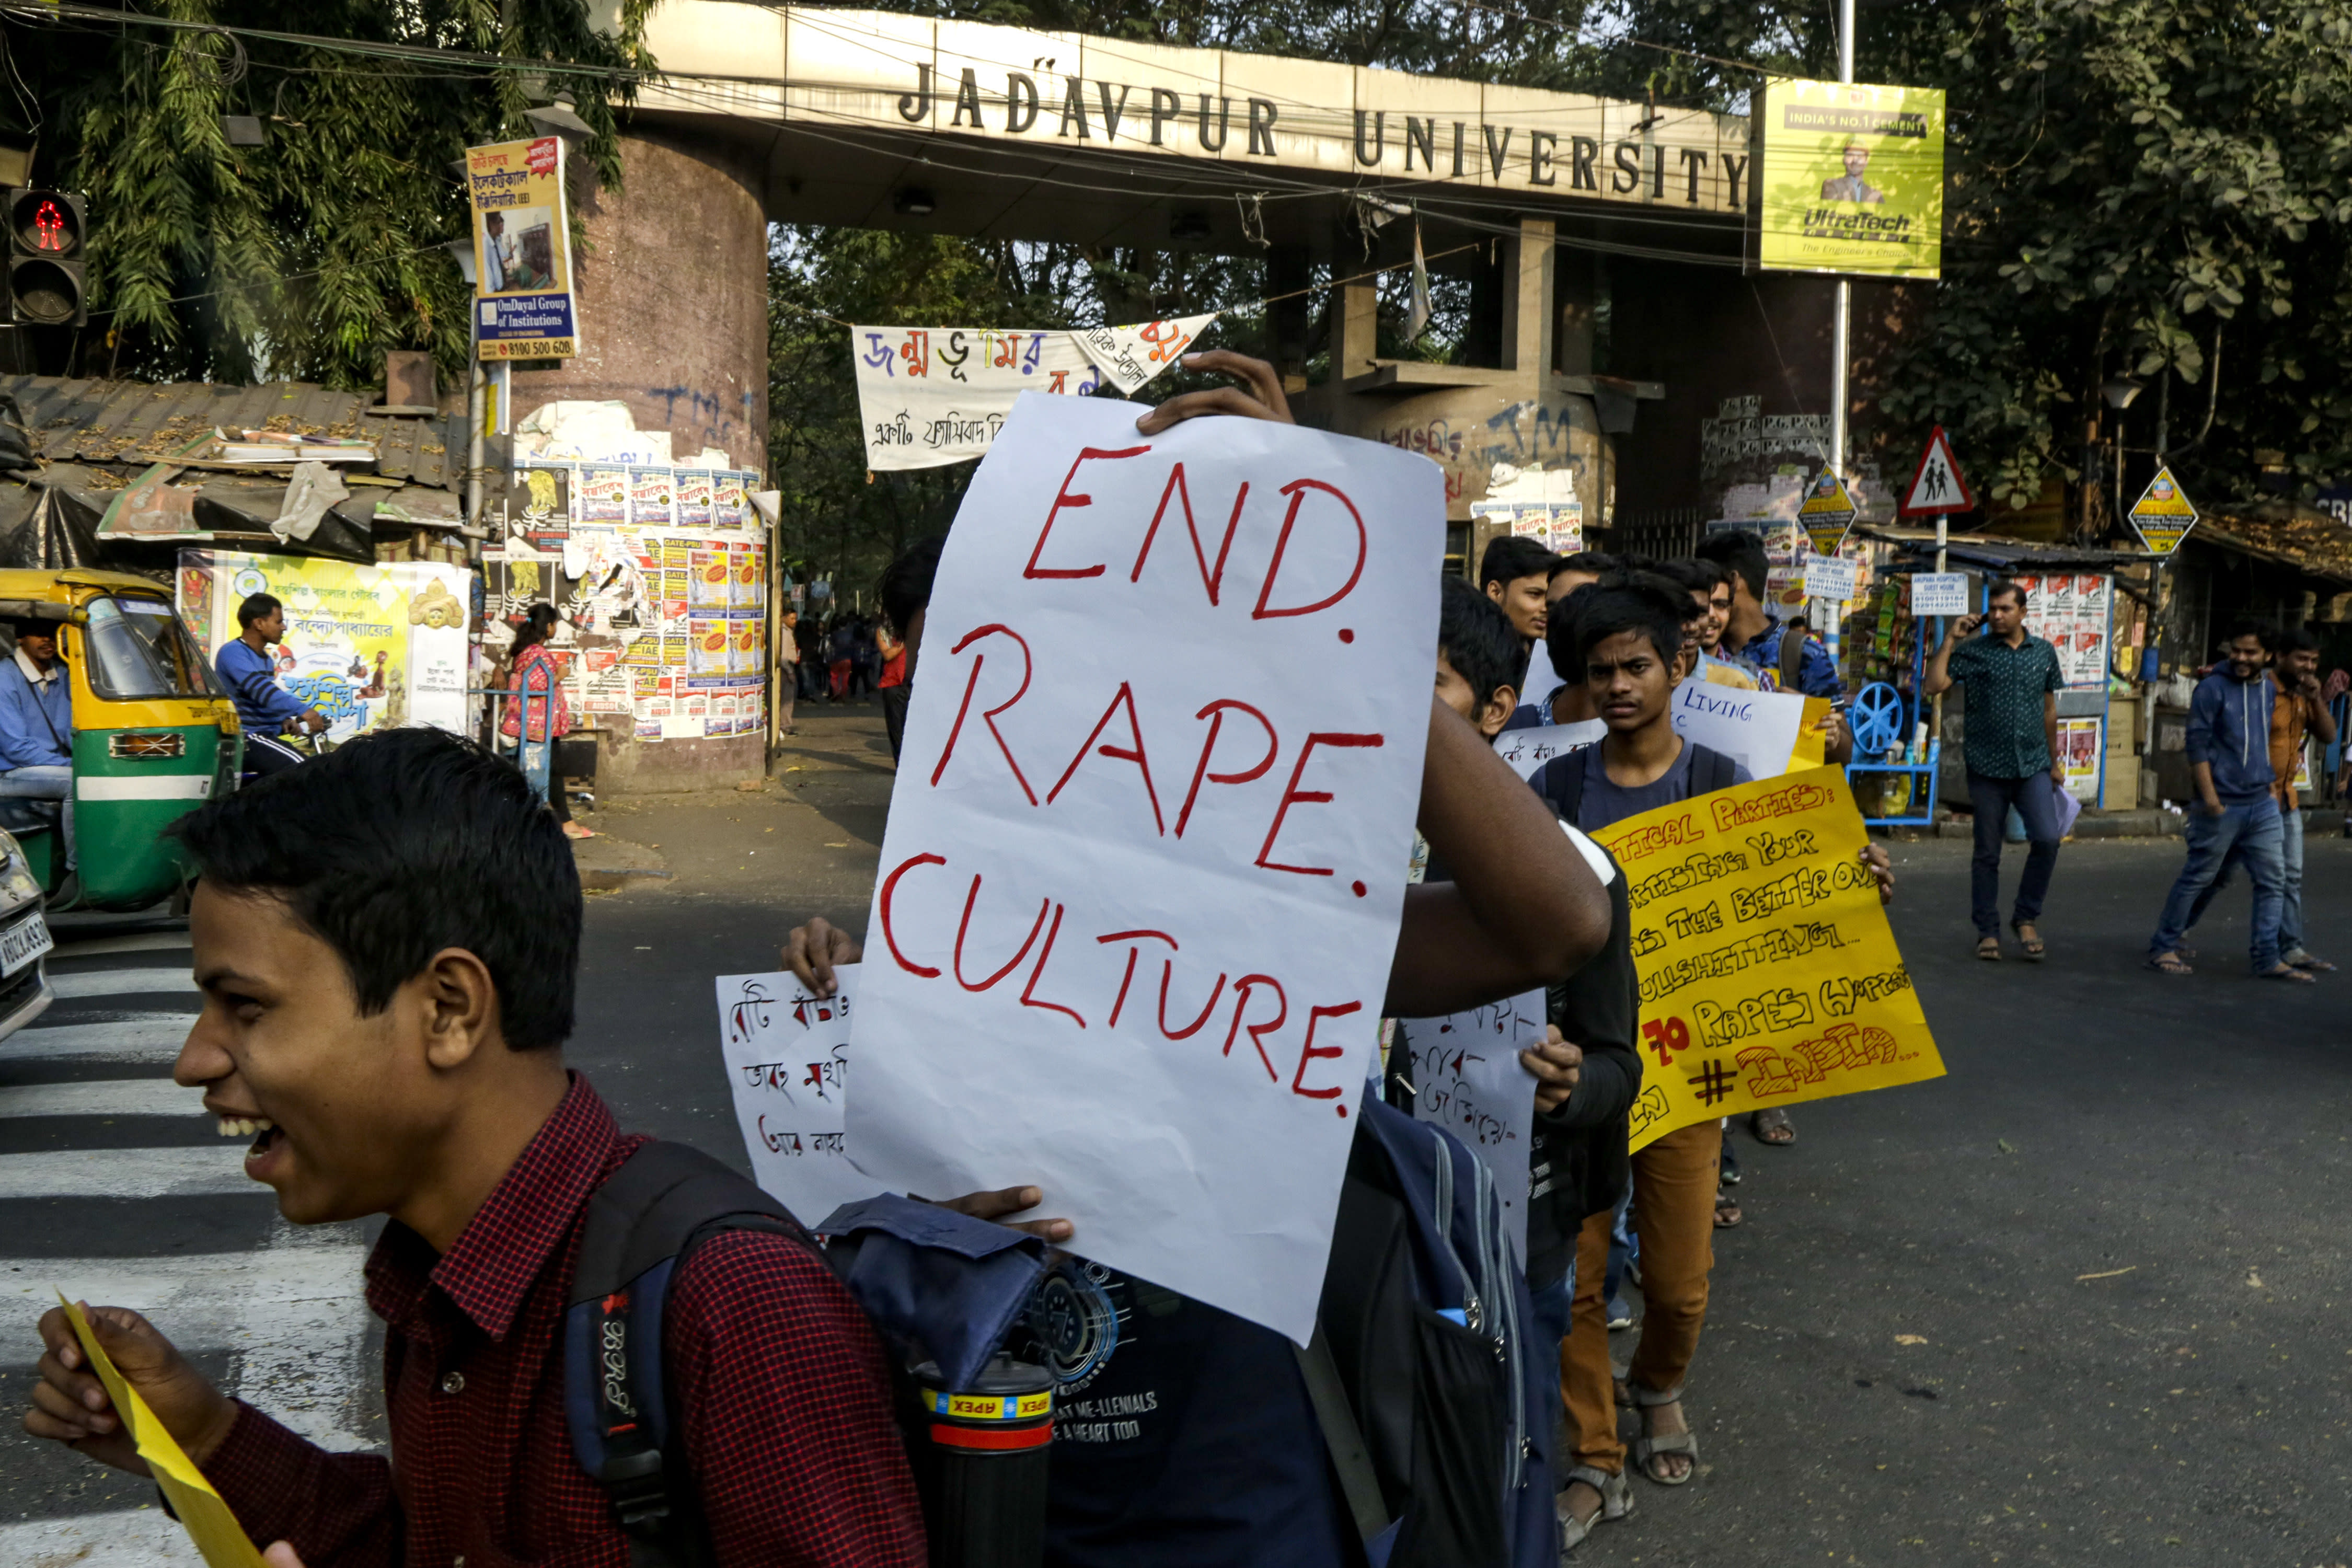 University students shout slogans demanding justice in the case of a veterinarian who was gang-raped and killed last week during a protest rally in Kolkata, India, Monday, Dec. 2, 2019. The burned body of the 27-year-old woman was found Thursday morning by a passer-by in an underpass in the southern city of Hyderabad after she went missing the previous night. (AP Photo/Bikas Das)